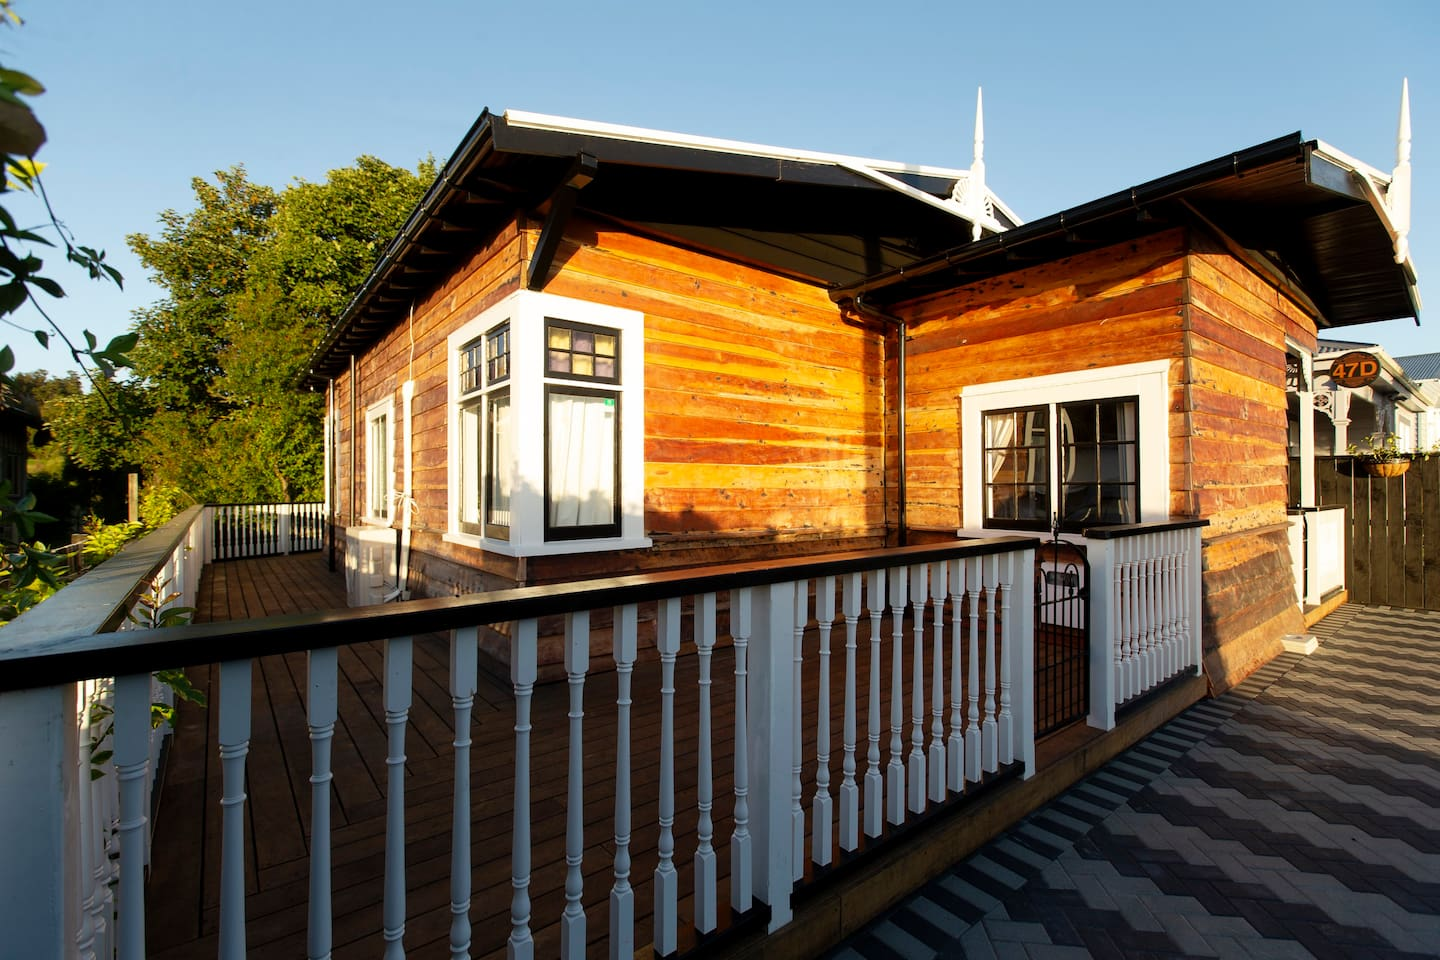 Welcome to The Night Train. A huge gated deck surrounds the property taking in the morning and afternoon sun.